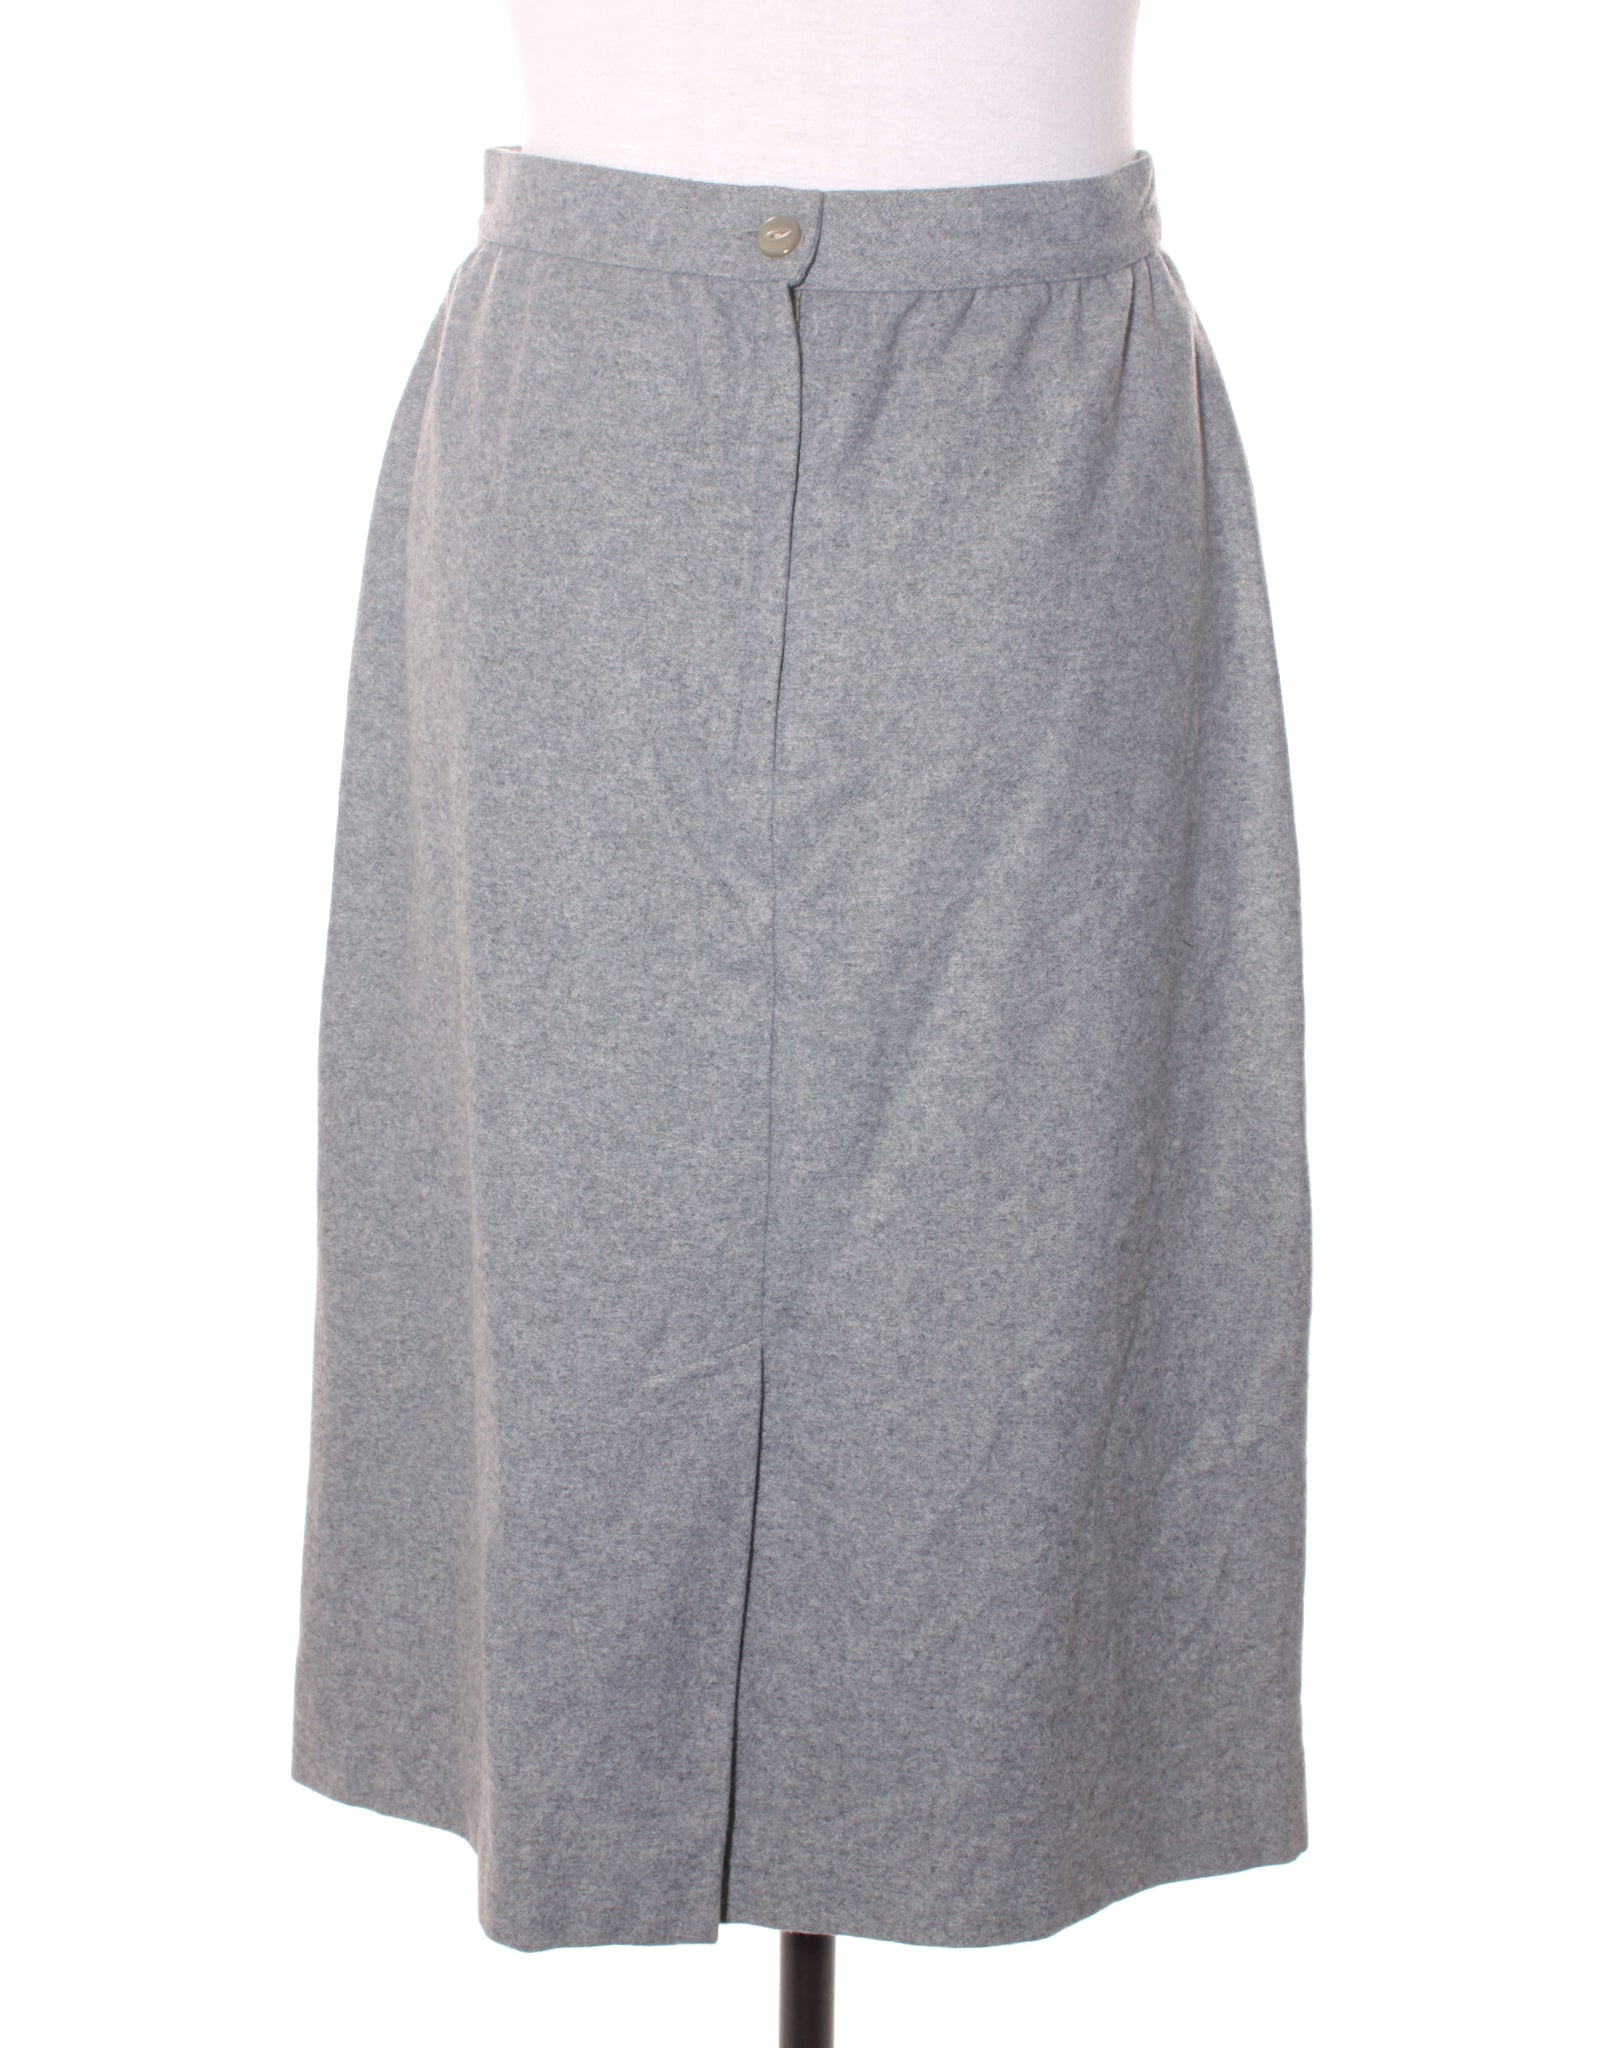 Vintage 80s Grey Wool Skirt